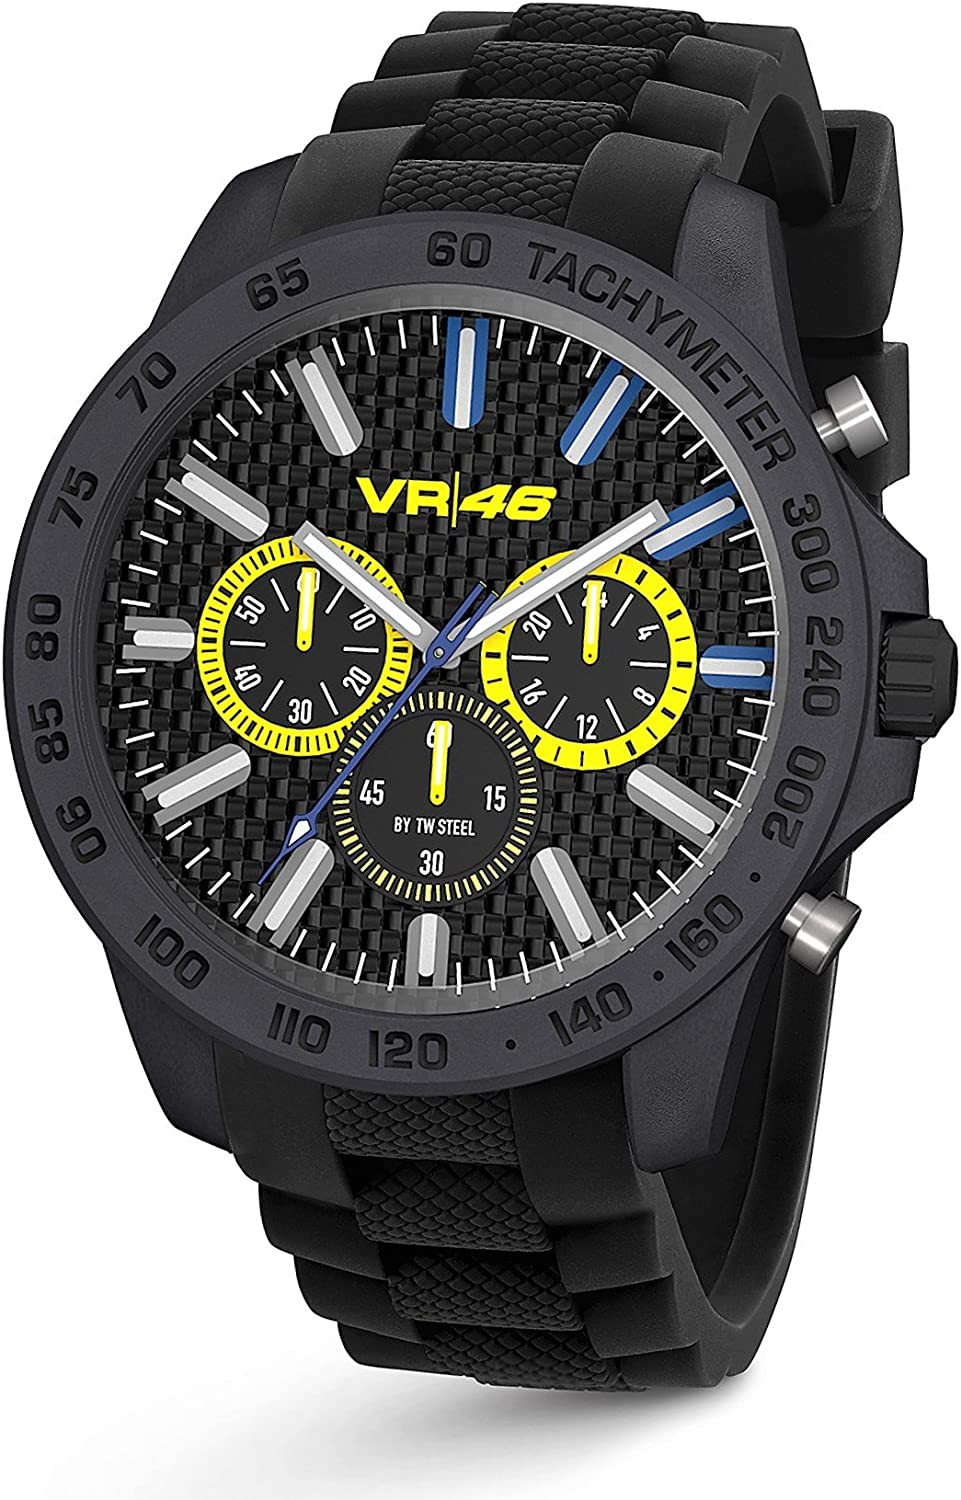 TW Steel VR46 Yamaha Valentino Rossi the Doctor Men s Ultra Light Carbon Motorcycle Racing Chronograph Watch VR114 Black Silicone Strap Analog Sport Wrist Watches